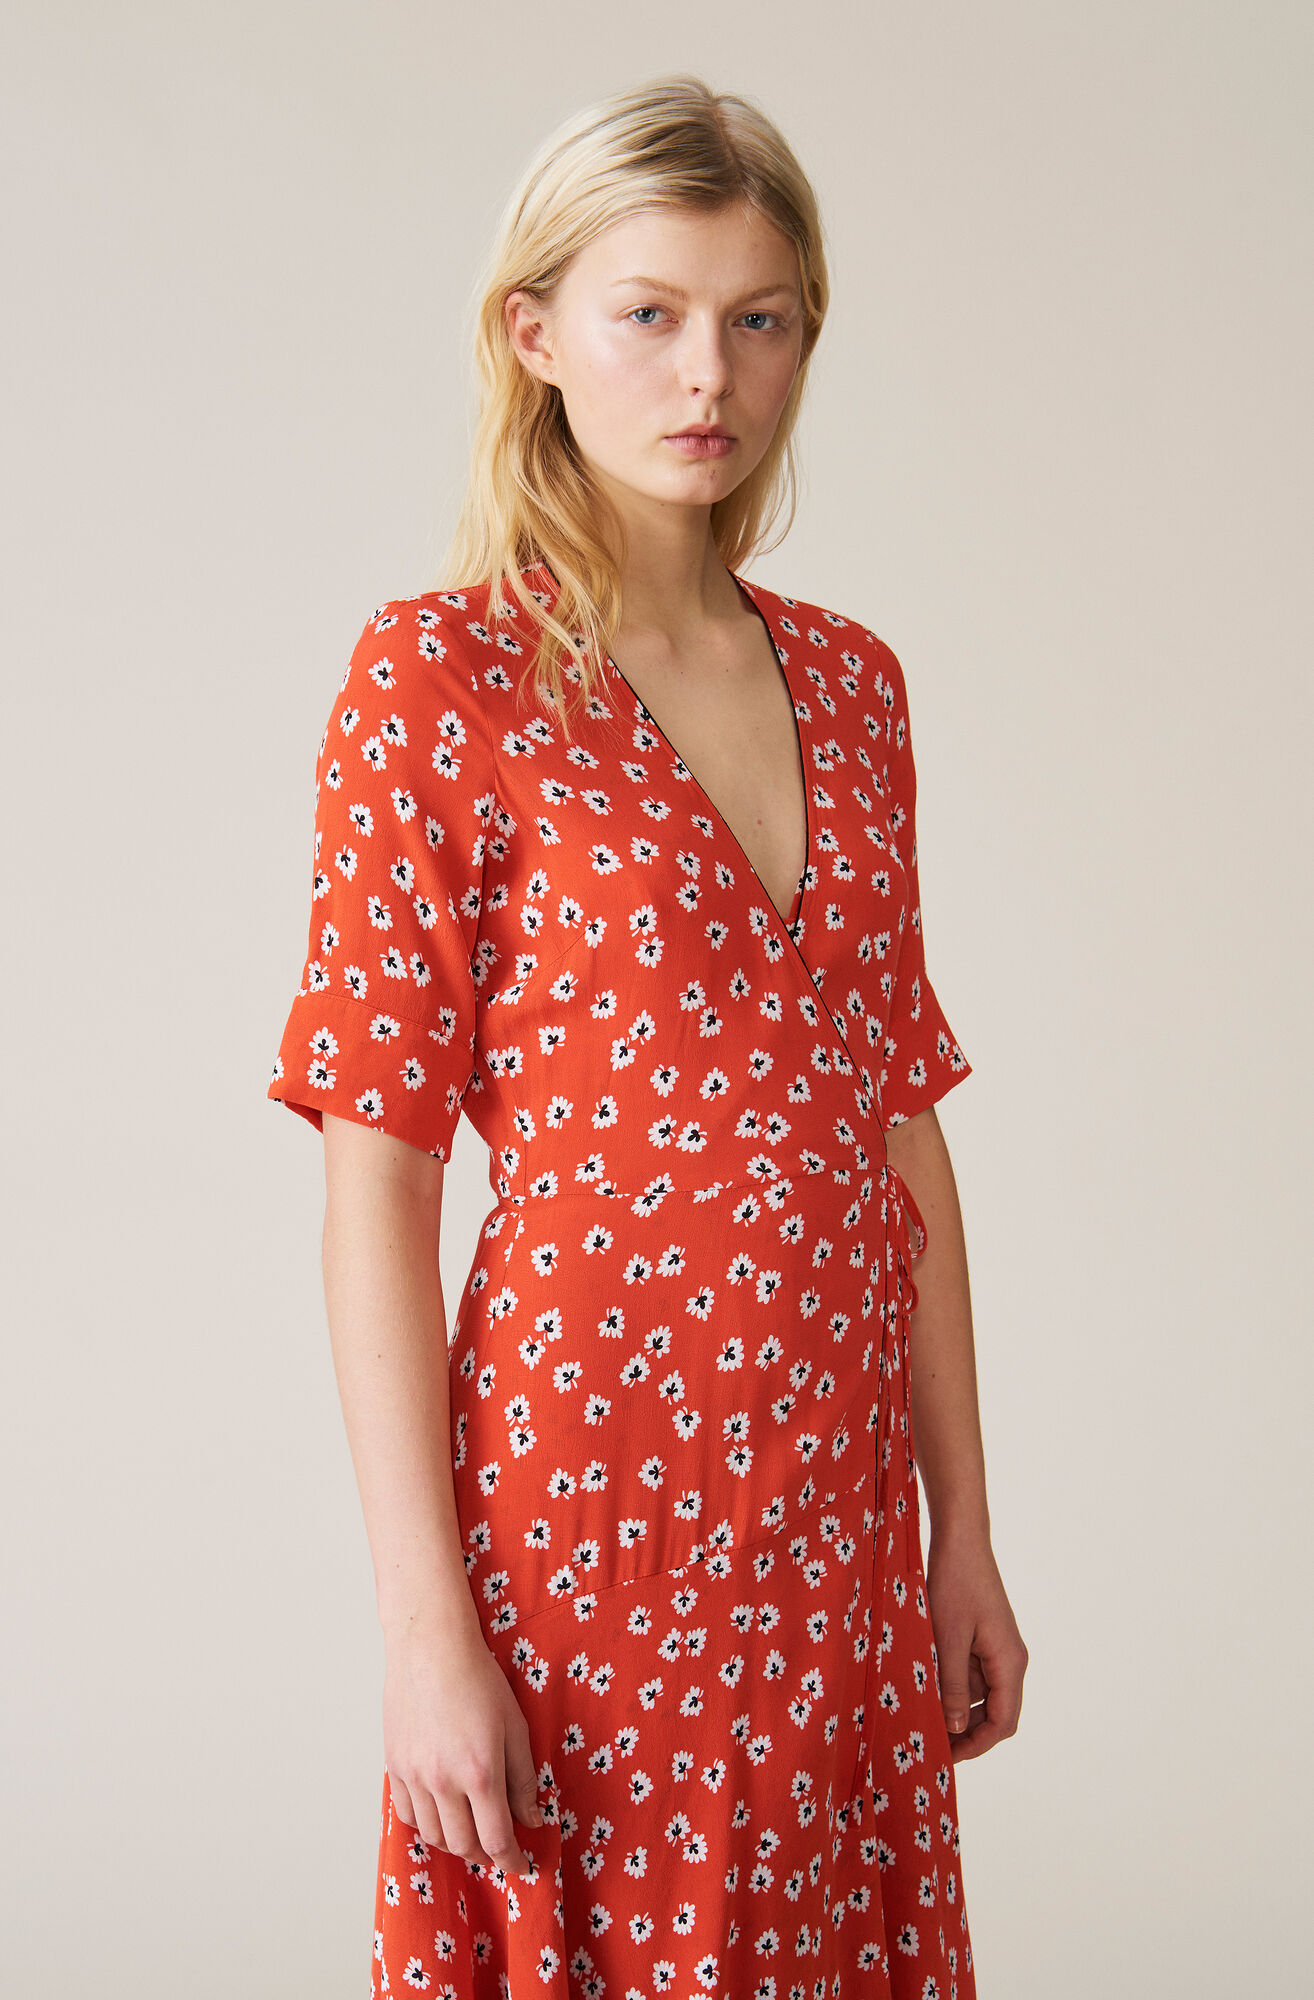 Silvery Crepe Wrap Dress, Big Apple Red, hi-res